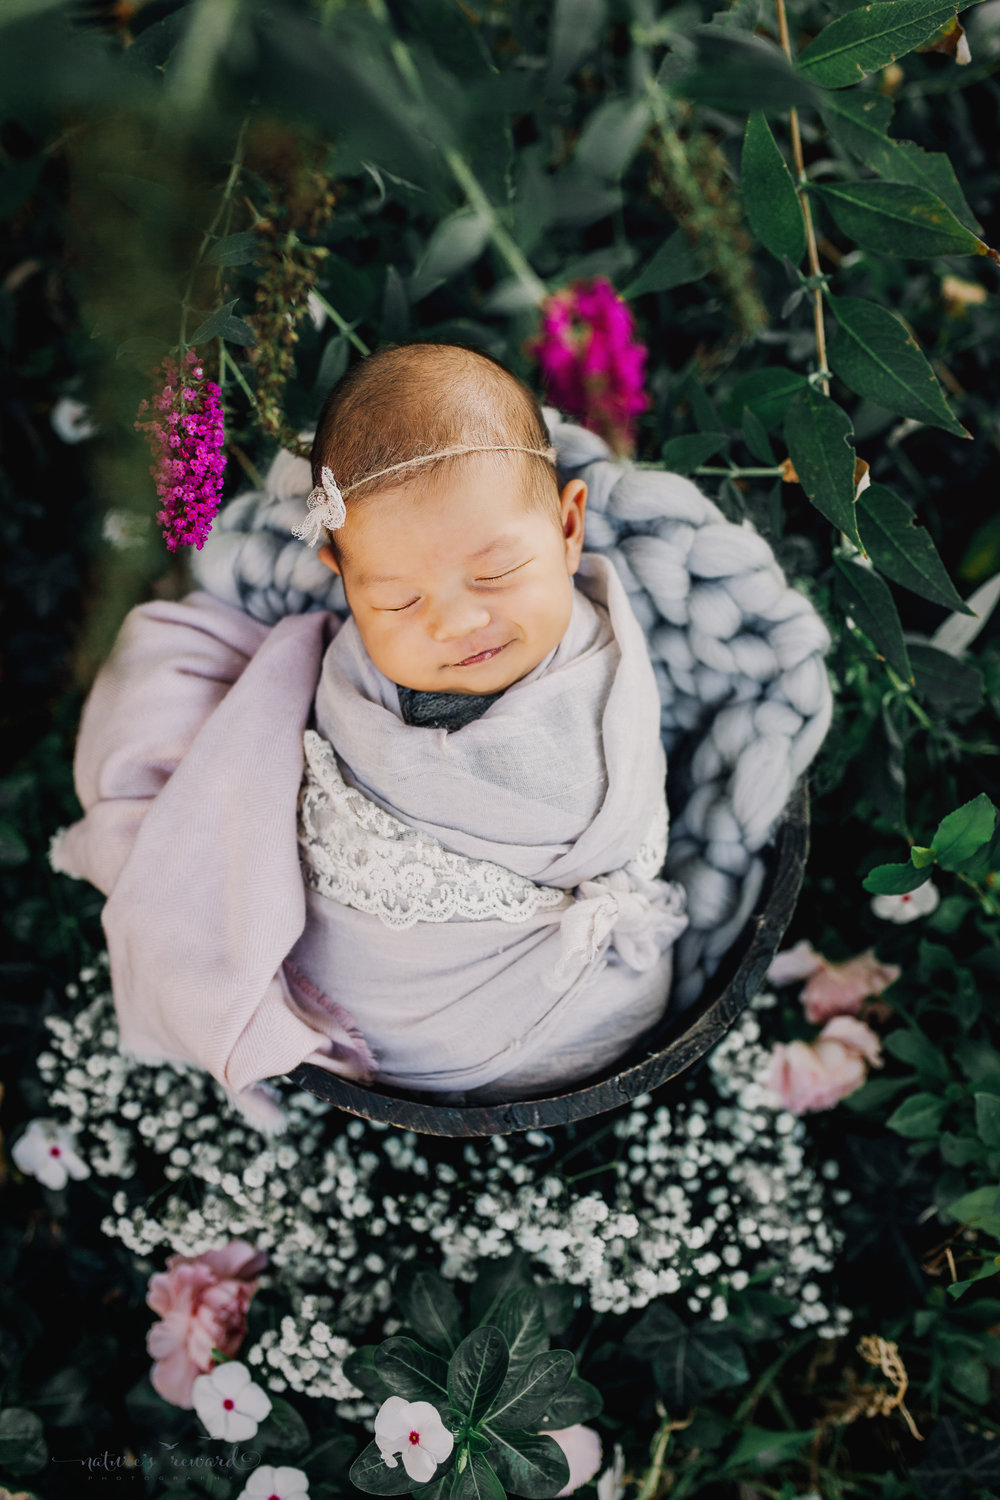 Gorgeous baby Newborn Girl in a bucket swaddled in  a neutral wrap with pink and grey basket stuffers in a bucket in a garden surrounded by lush greens and white flowers, purple flowers, and pink carnations and my favorite baby breath in this portrait by Nature's Reward Photography.